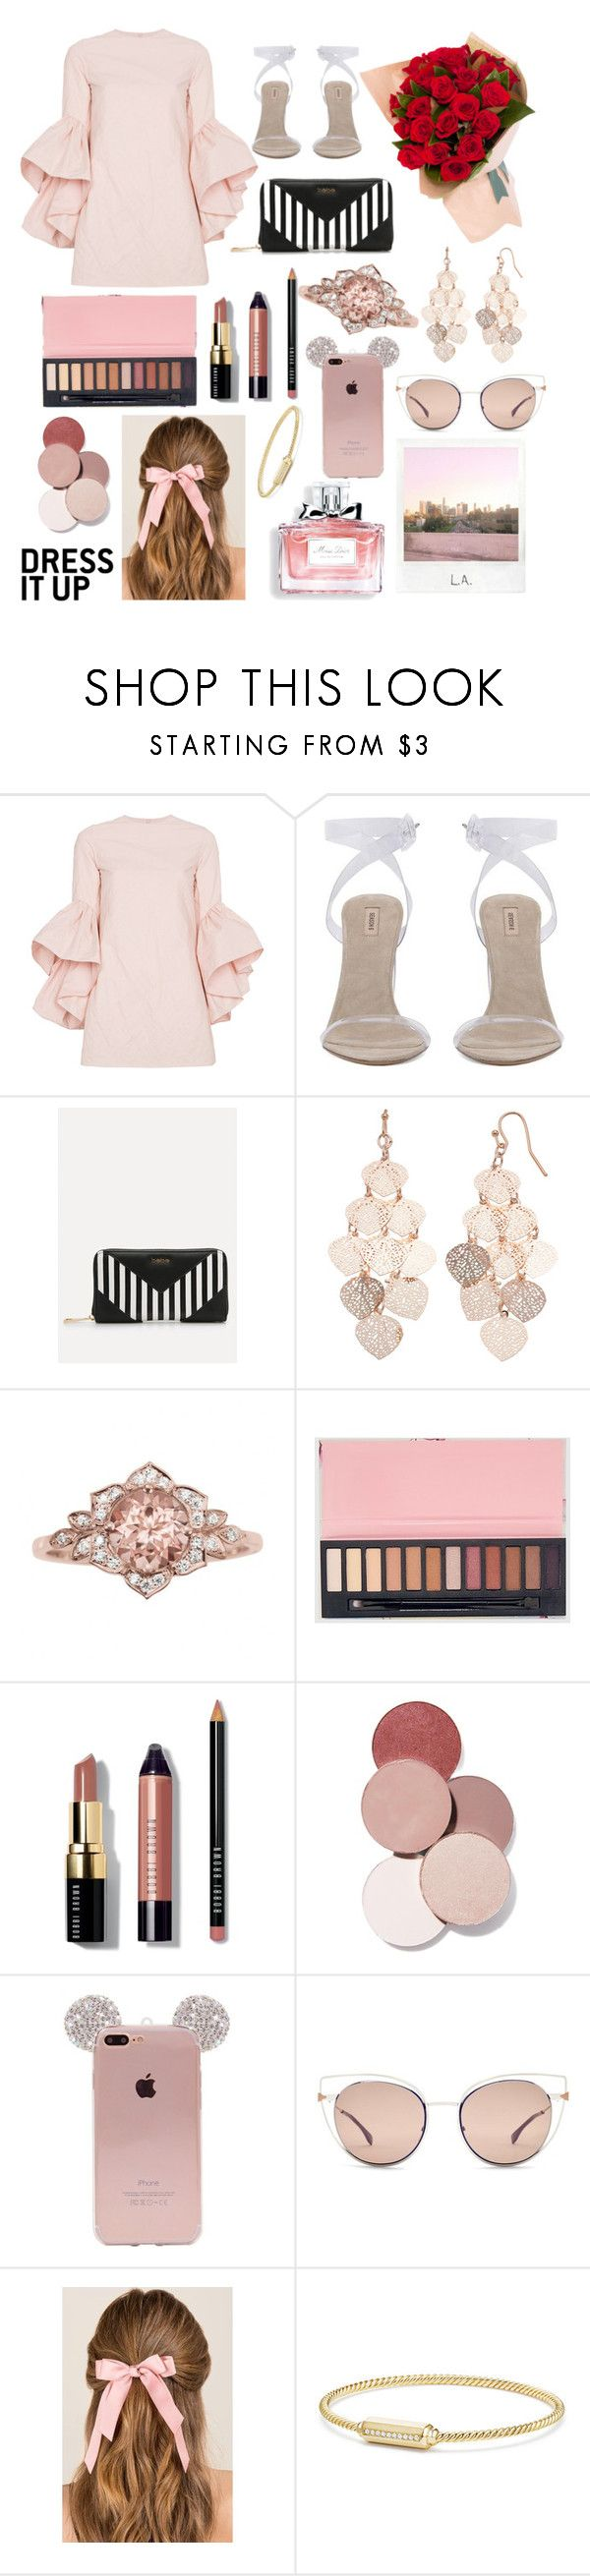 """""""V day meal 💕💋"""" by meganjaned ❤ liked on Polyvore featuring Marques'Almeida, Bebe, LC Lauren Conrad, Bobbi Brown Cosmetics, LunatiCK Cosmetic Labs, Fendi, Francesca's, Christian Dior, David Yurman and Polaroid"""